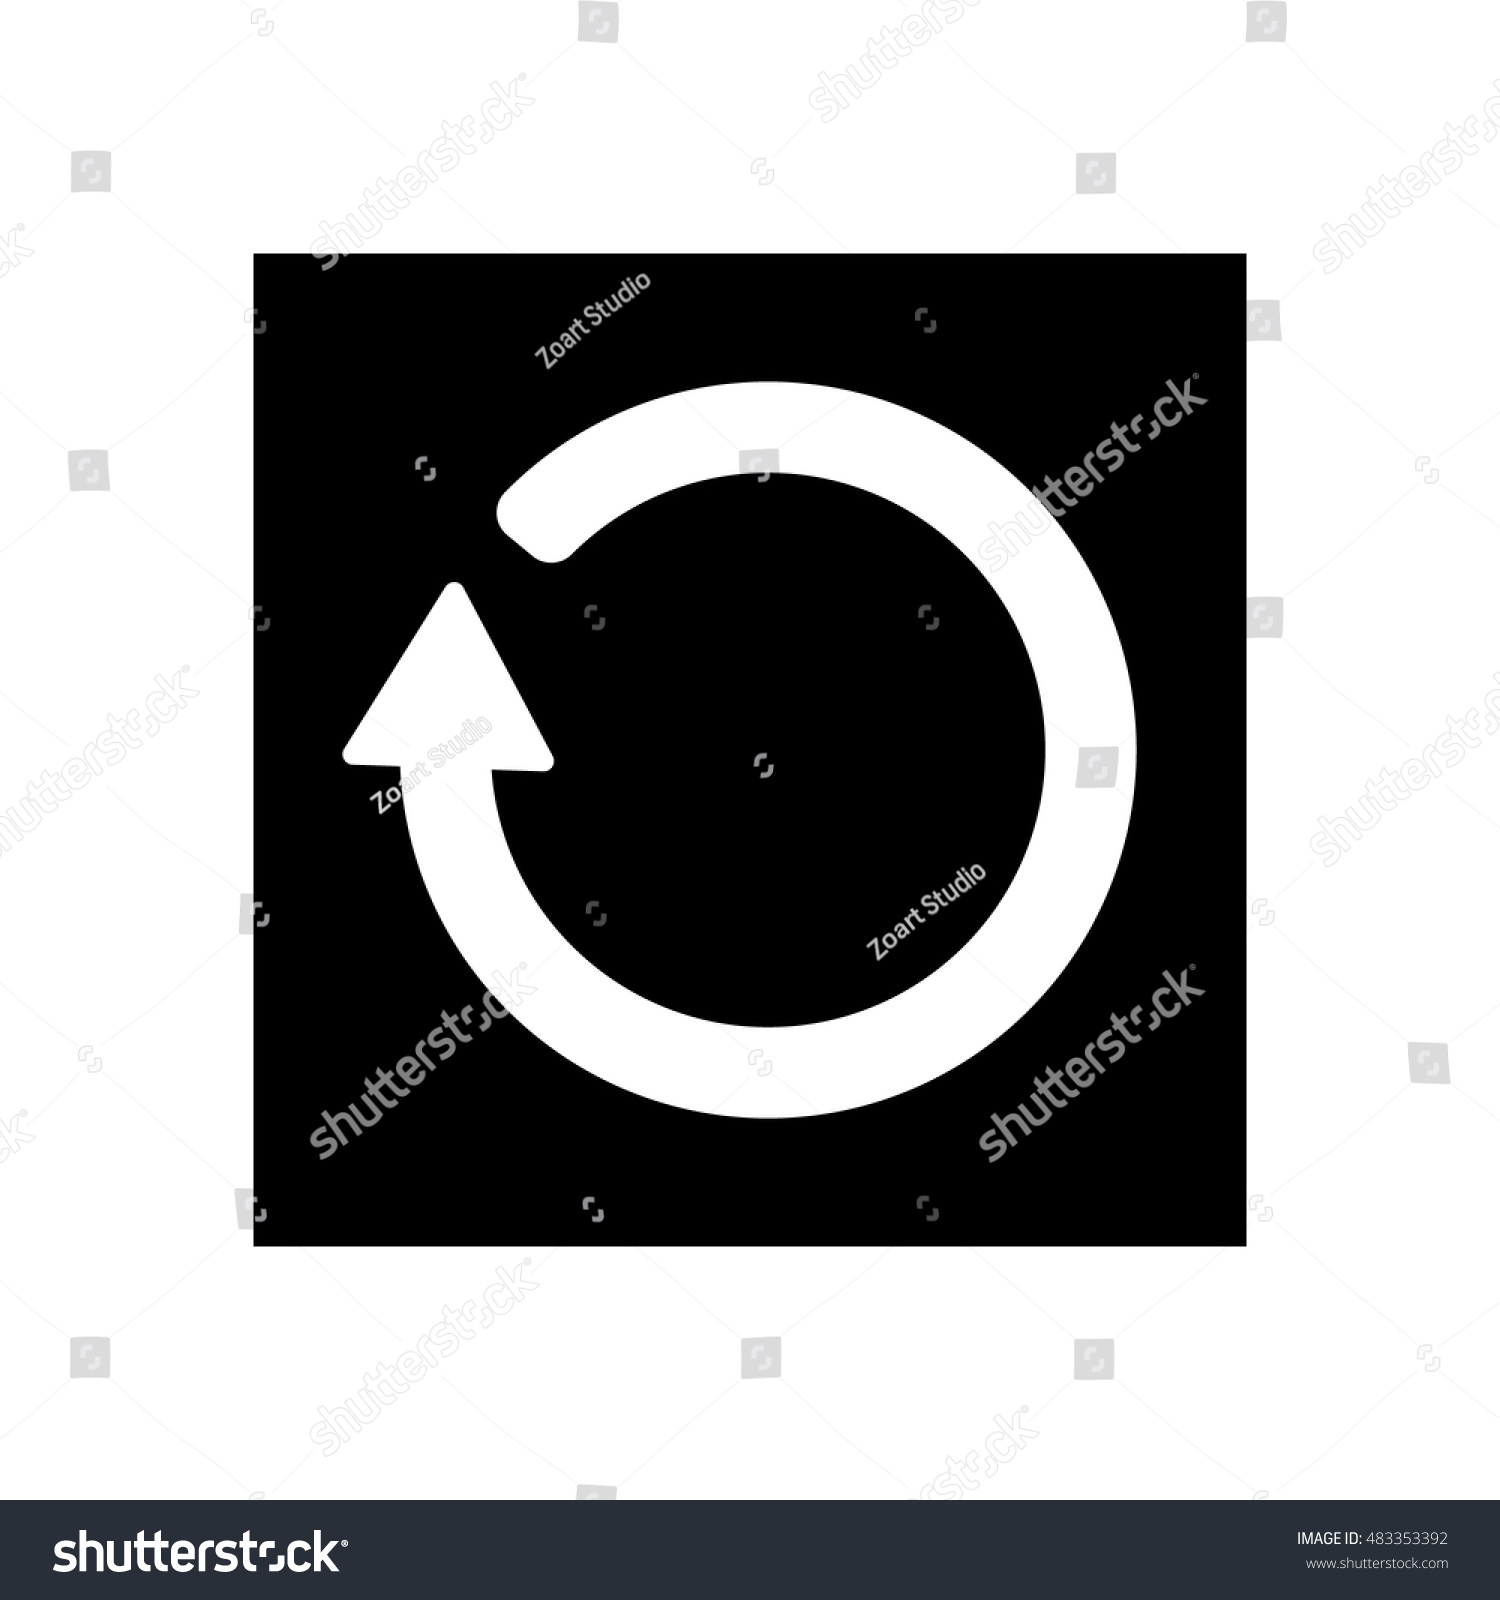 Refresh icon loading symbol stock vector 483353392 shutterstock loading symbol biocorpaavc Image collections